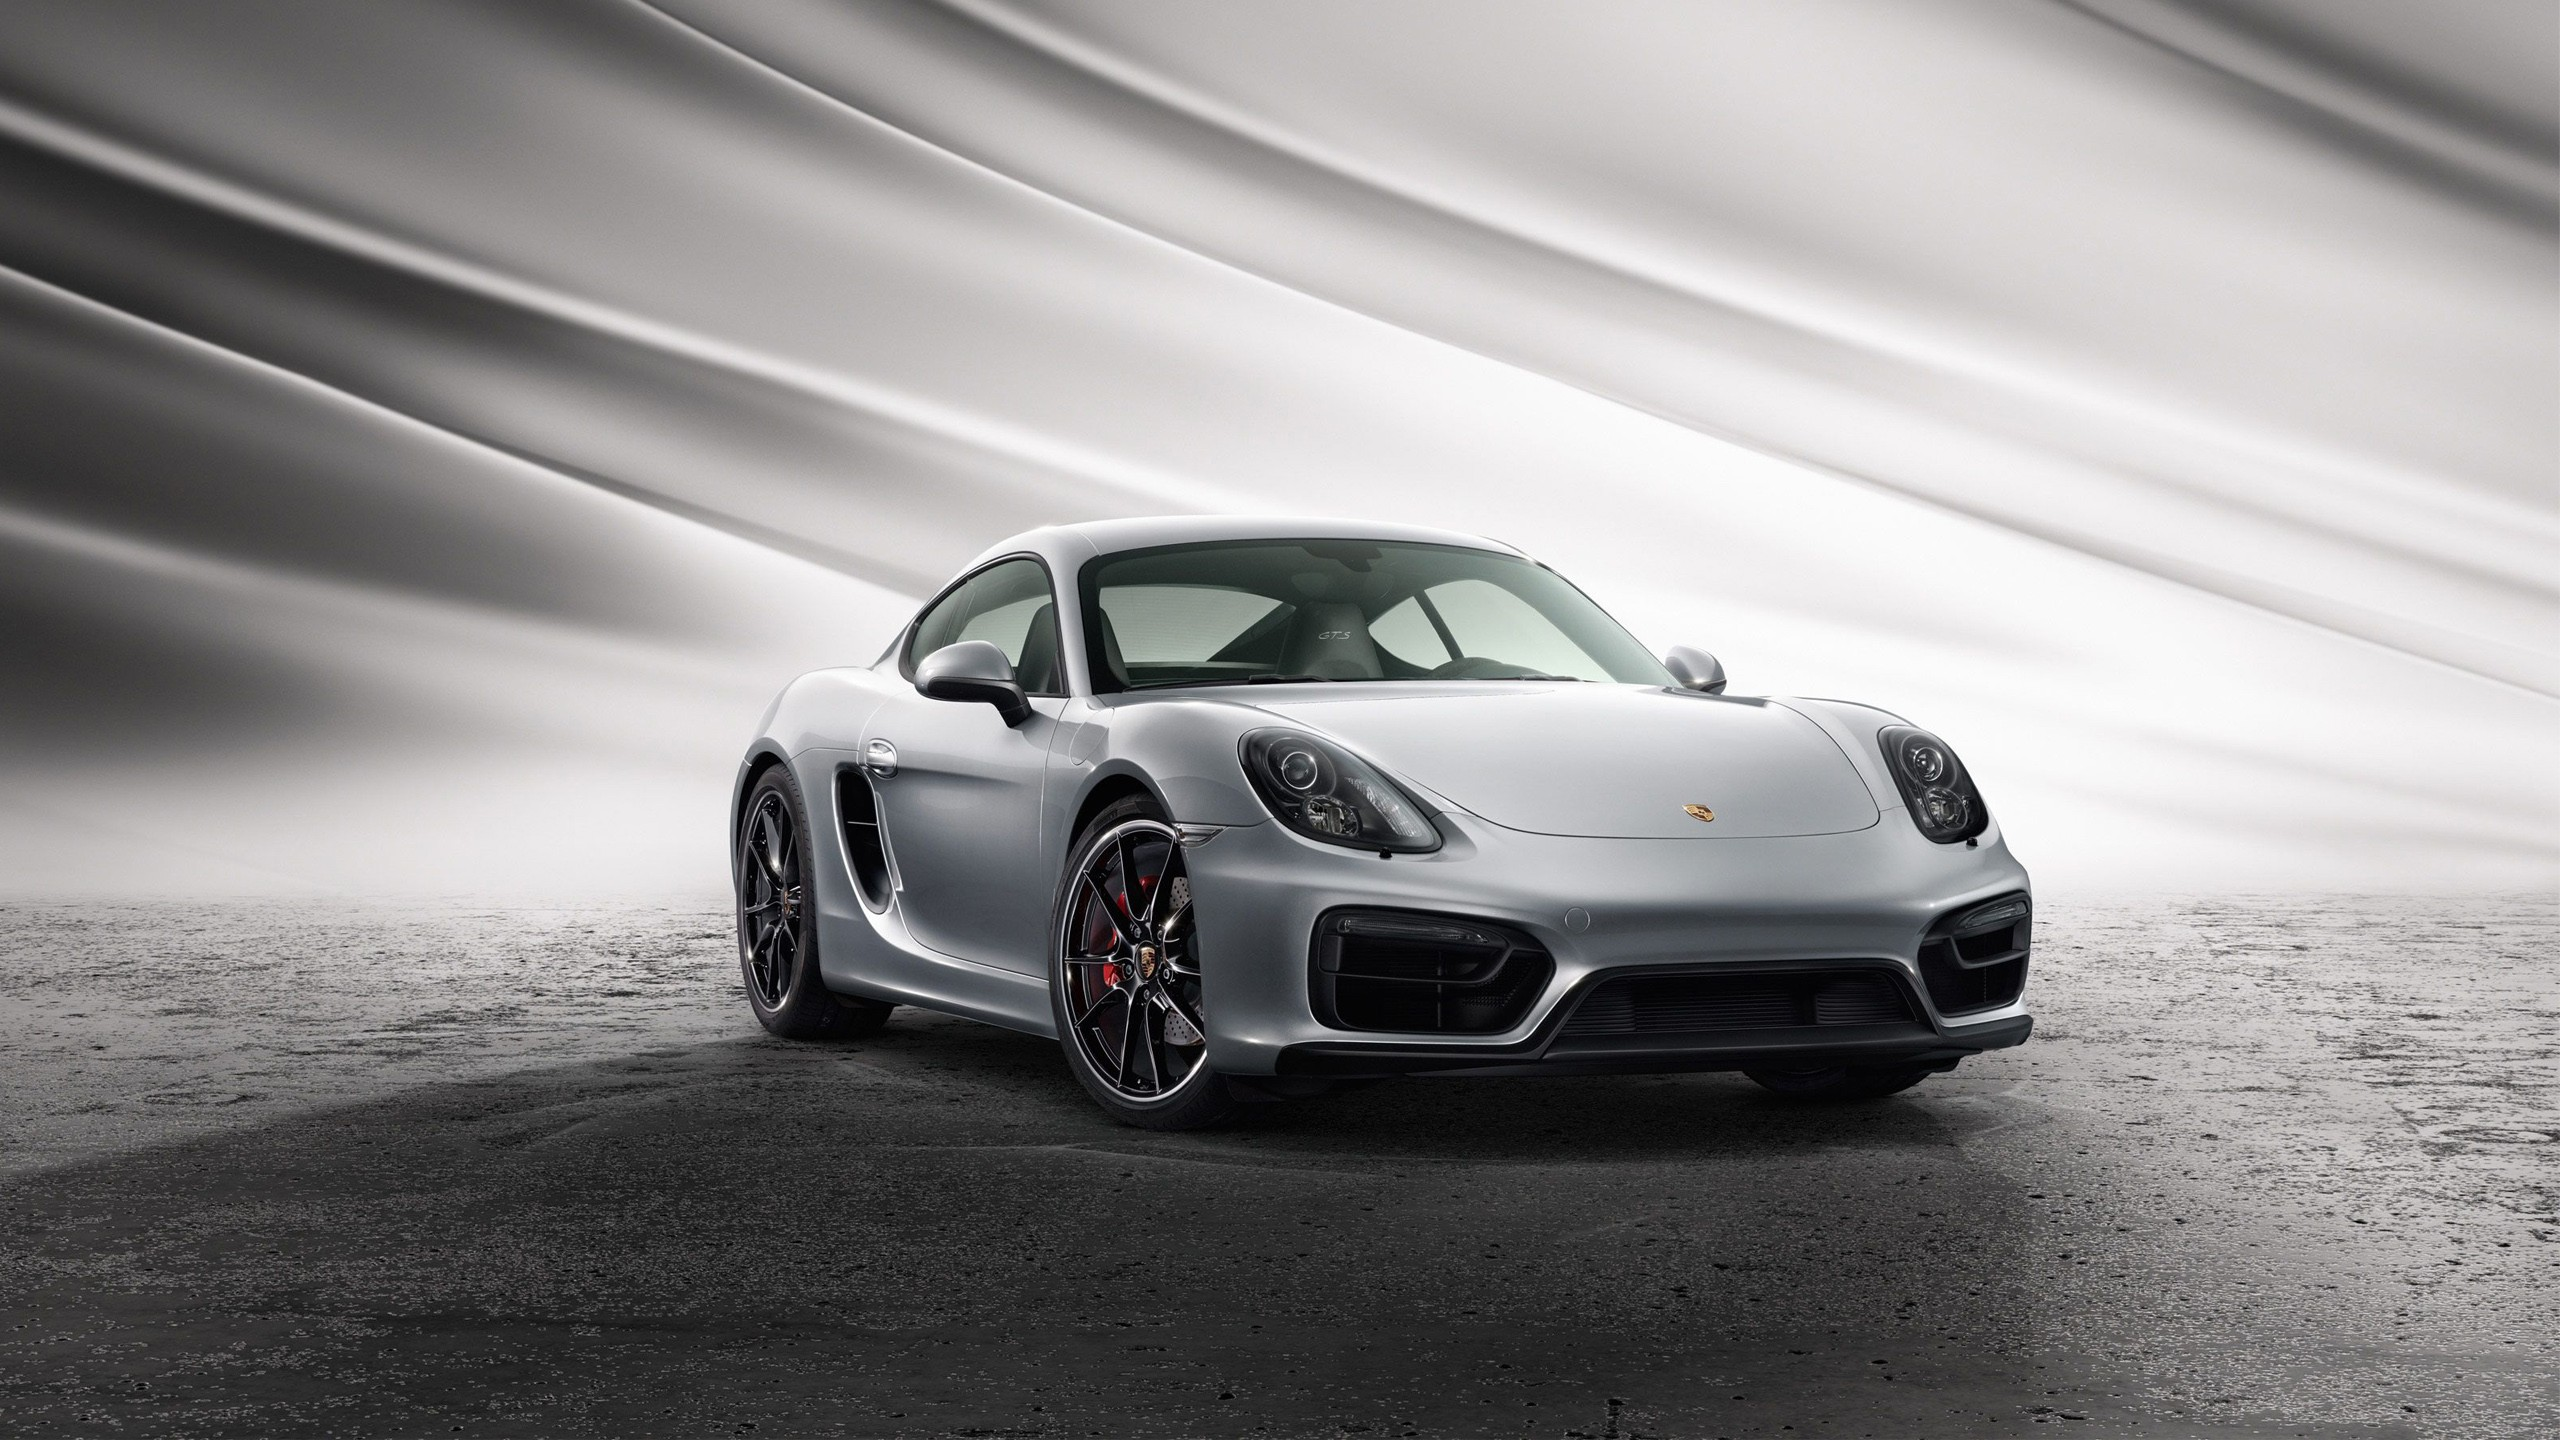 Cute Wallpapers Screensavers 2015 Porsche Cayman Gts Wallpapers Hd Wallpapers Id 14991